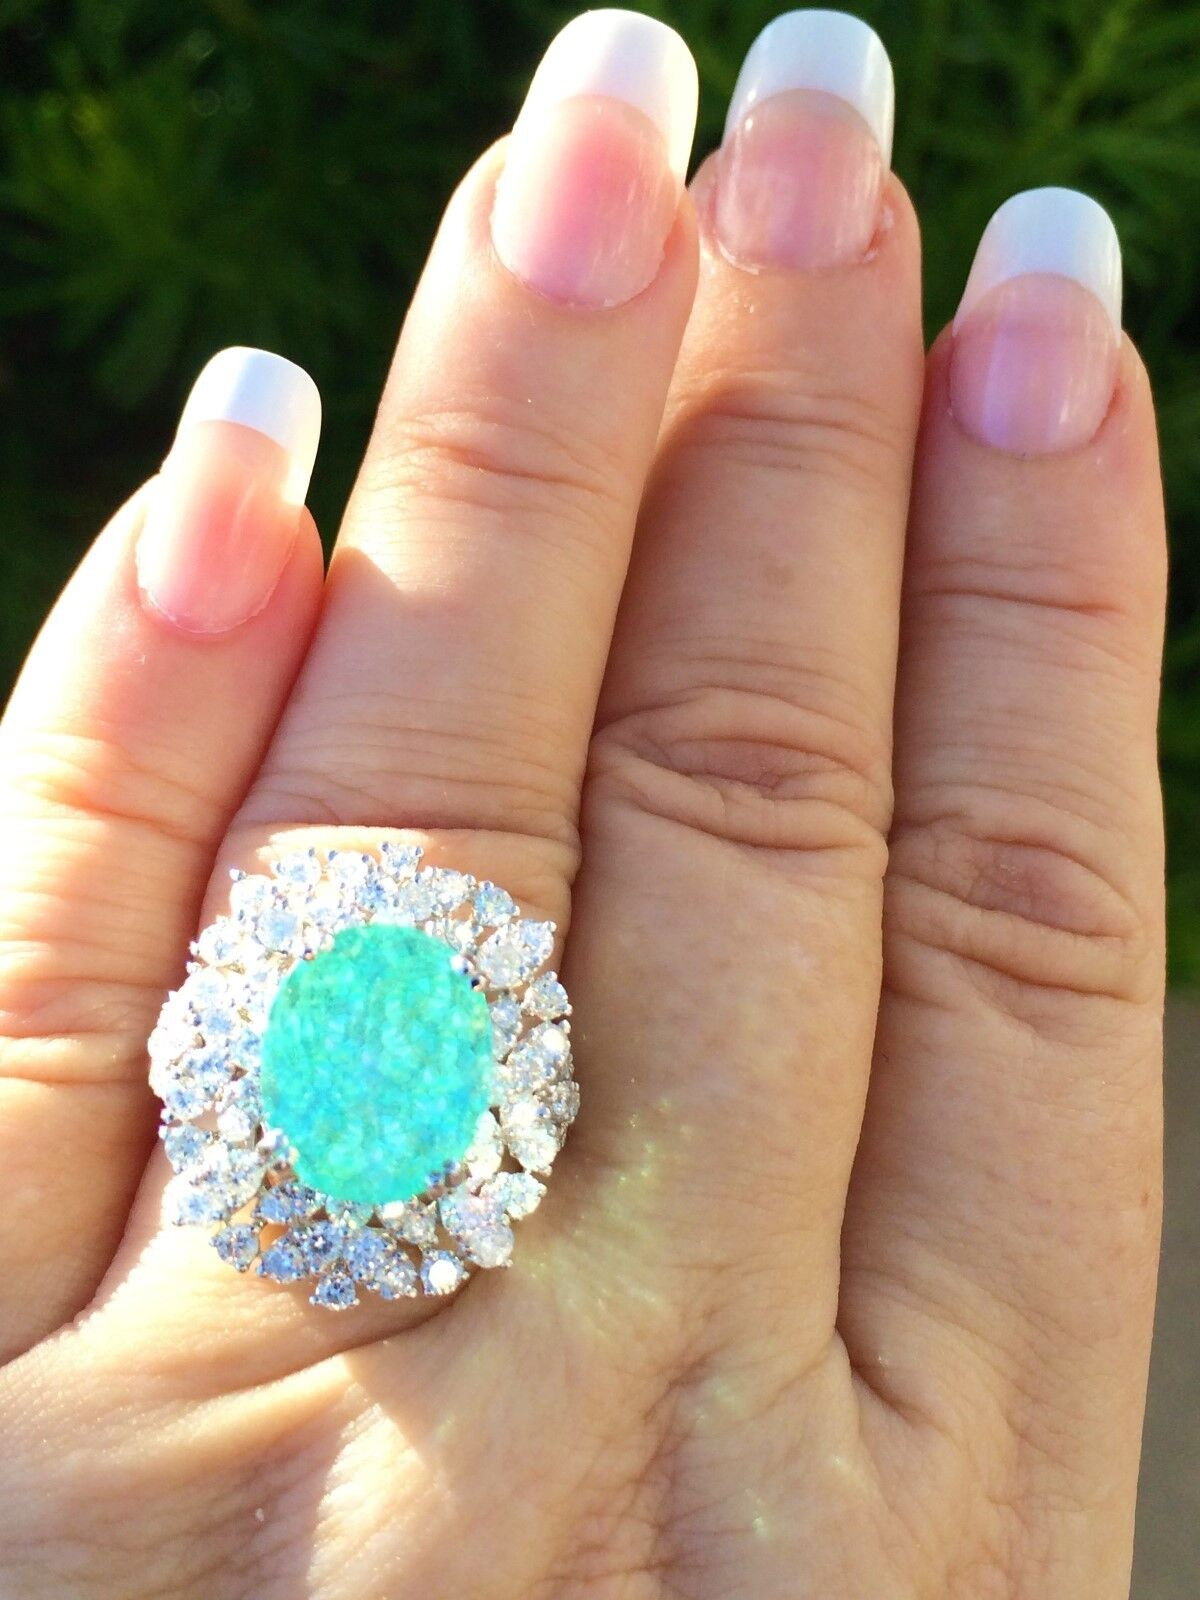 You're Almost Done 18k Gold 867 Ct Gia Certified Unheated Neon Paraiba  Tourmaline Diamond Ring!!